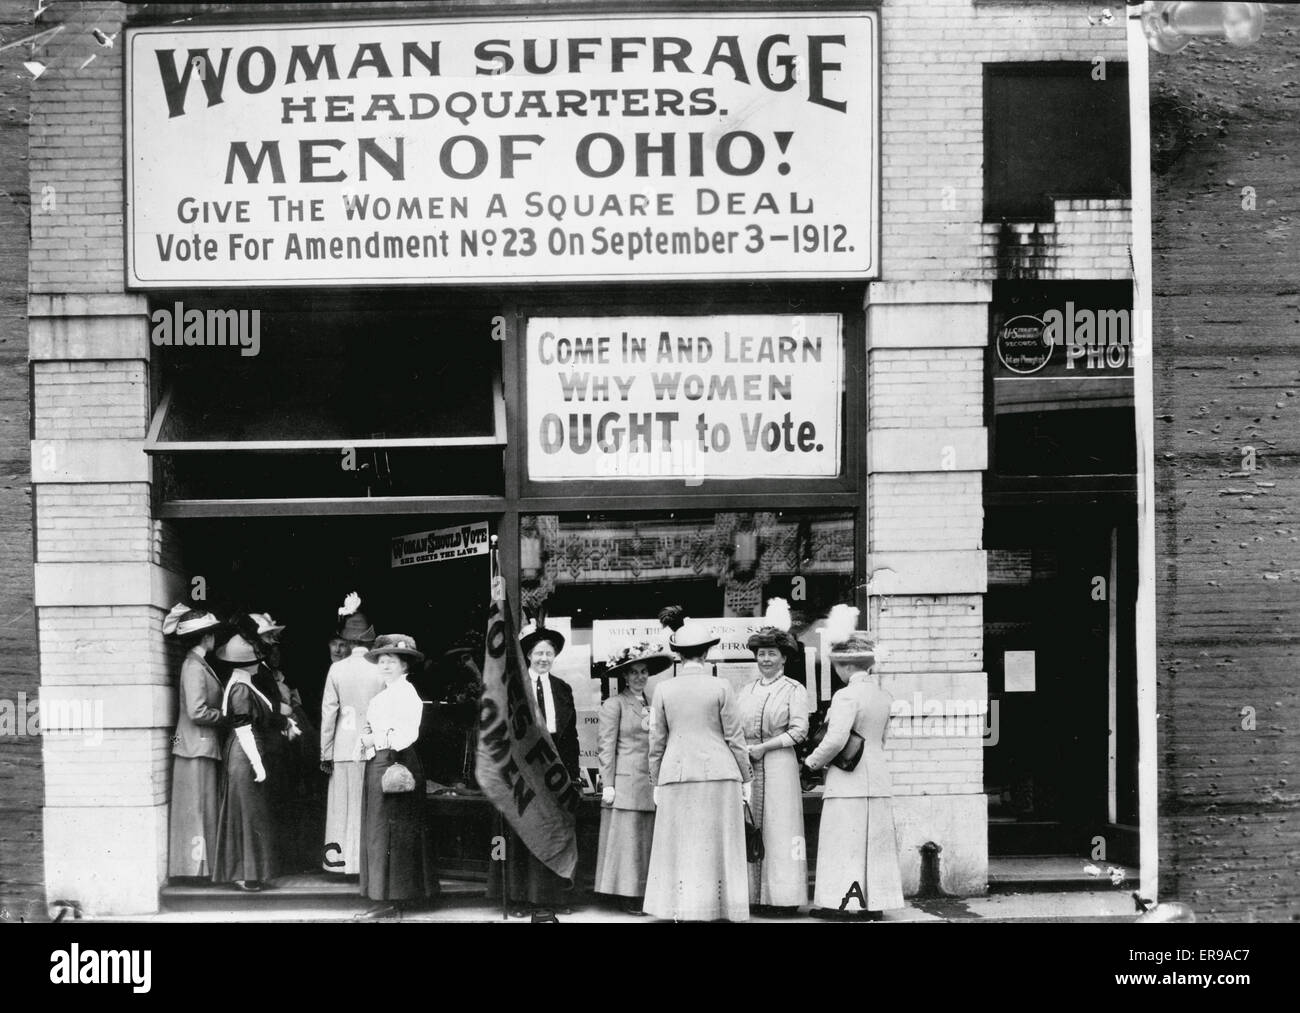 Woman suffrage headquarters in Upper Euclid Avenue, Cleveland - A. (at extreme right) is Miss Belle Sherwin, President, National League of Women Voters; B. is Judge Florence E. Allen (holding the flag); C. is Mrs. Malcolm McBride. 1912 Stock Photo